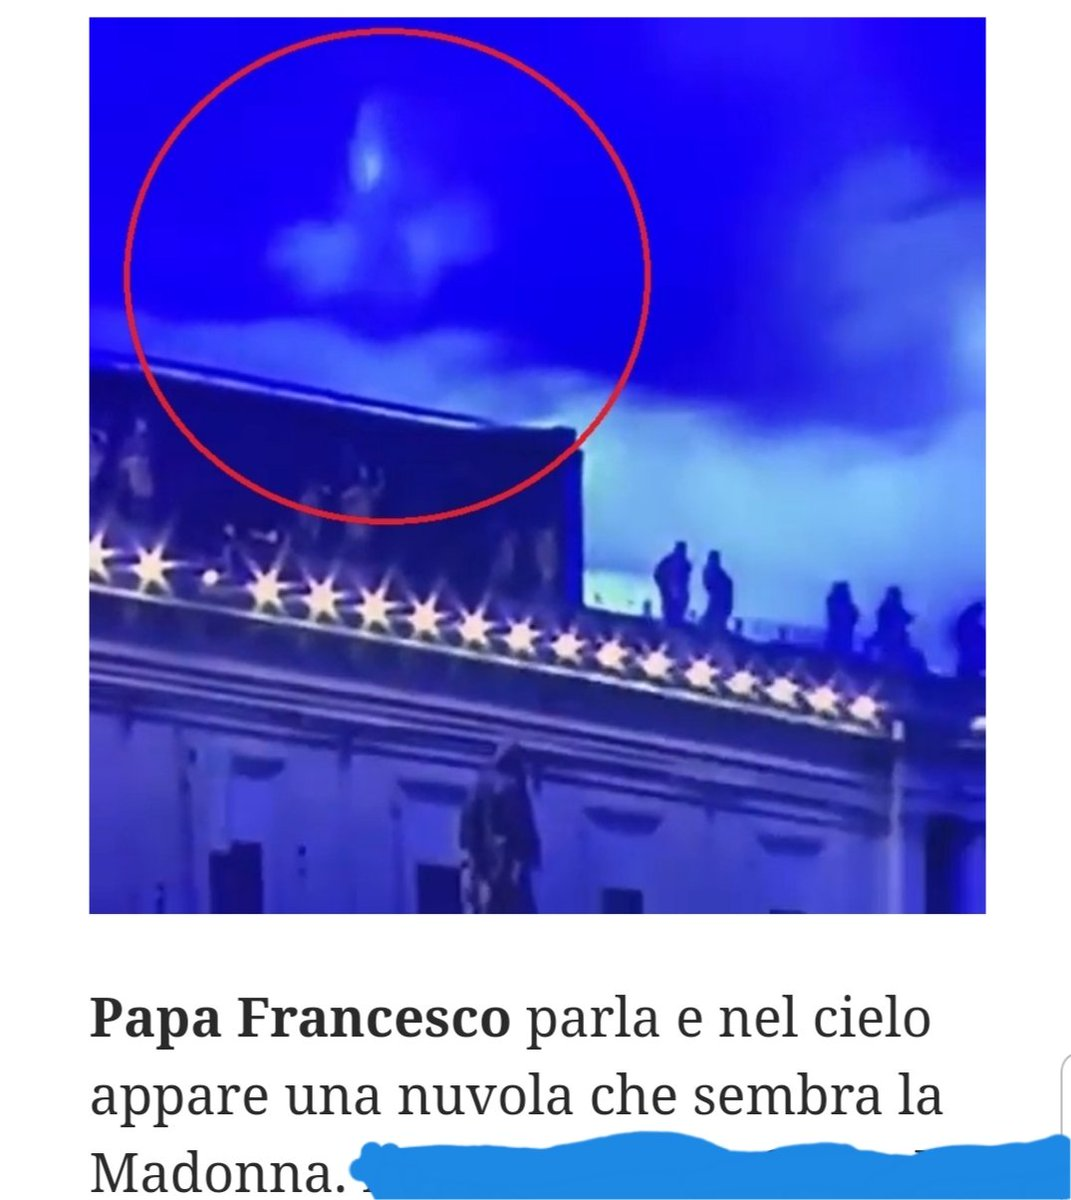 #PapaFrancesco